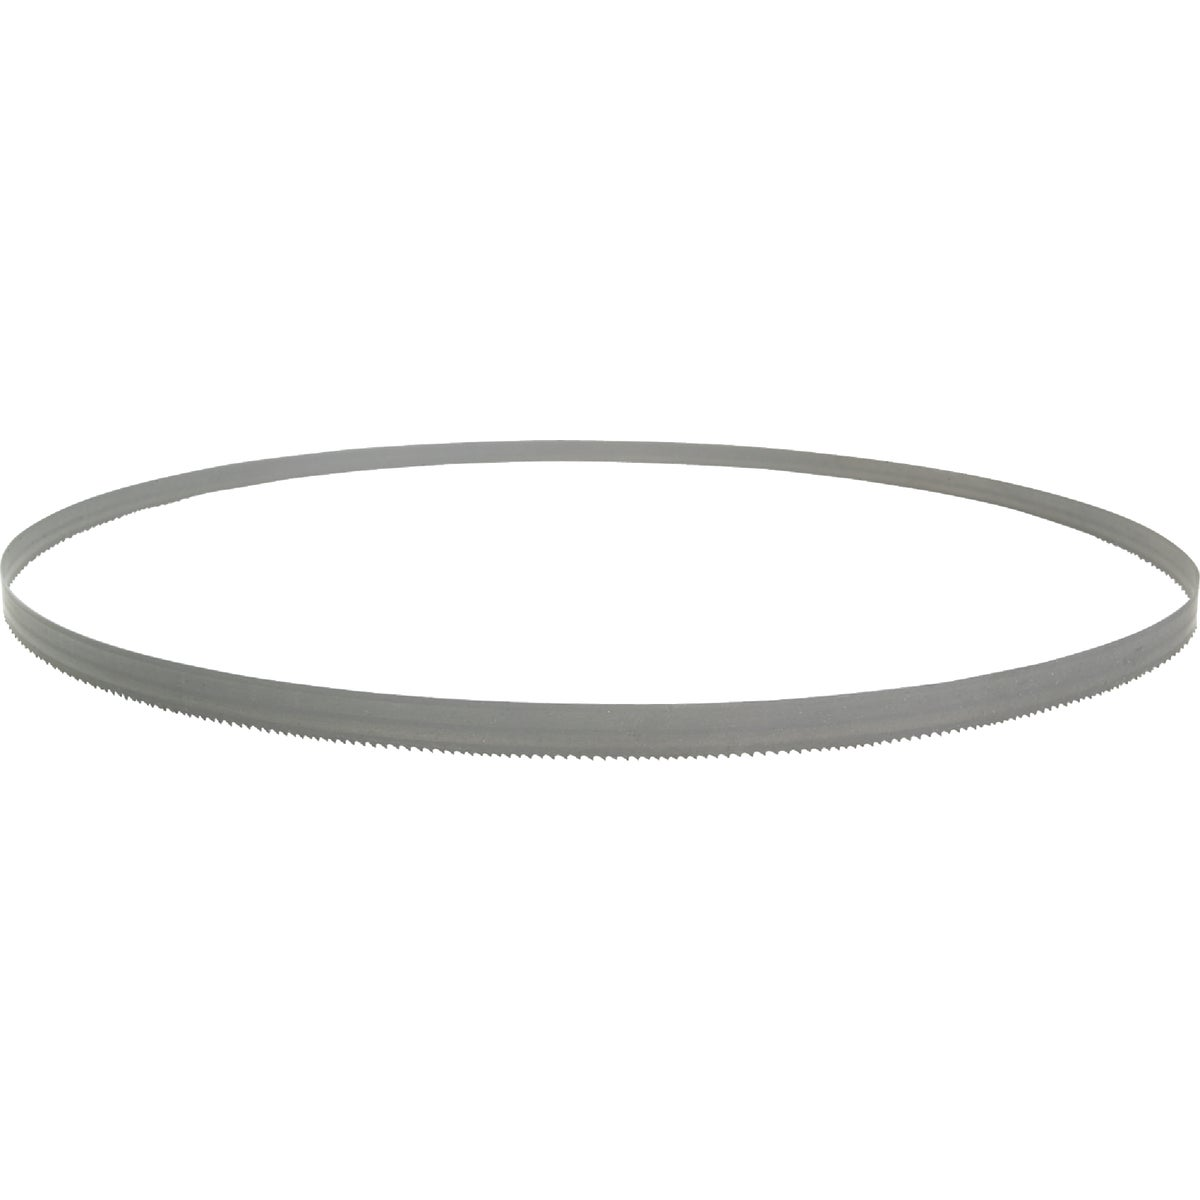 10/14TPI BAND SAW BLADE - 48390550 by Milwaukee Accessory